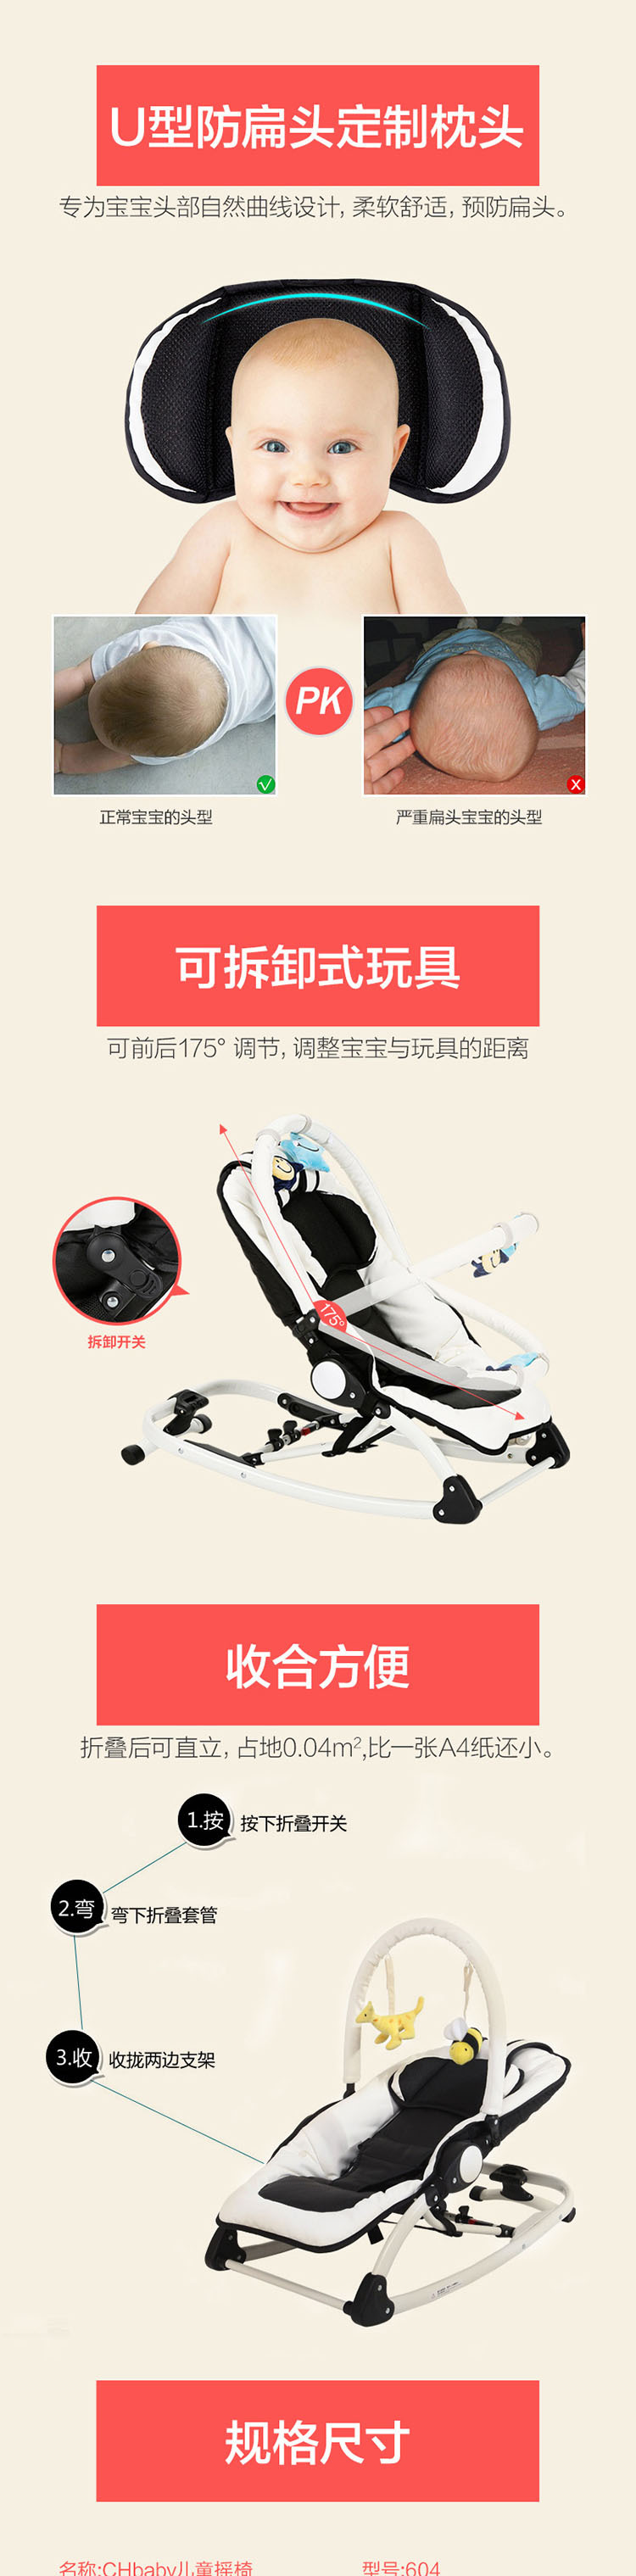 Hc8adfc0ea931446d8a24c881124d02faL Baby cradle electric baby rocking chair baby swing sleeping cradle bed with music comfort rocking chair Multifunctional berceau